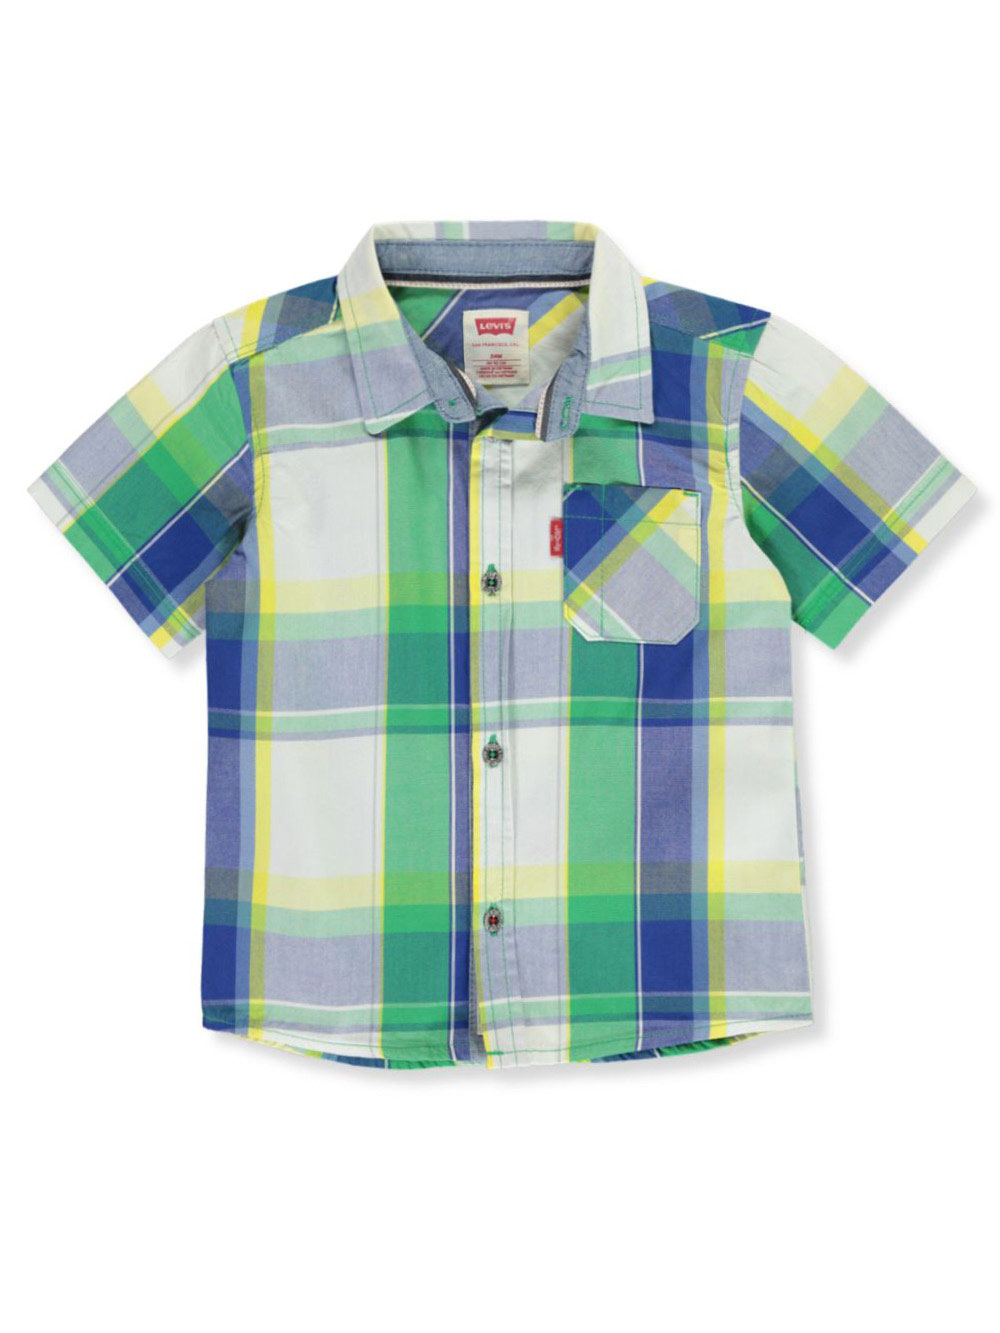 Boys Green Button-Downs